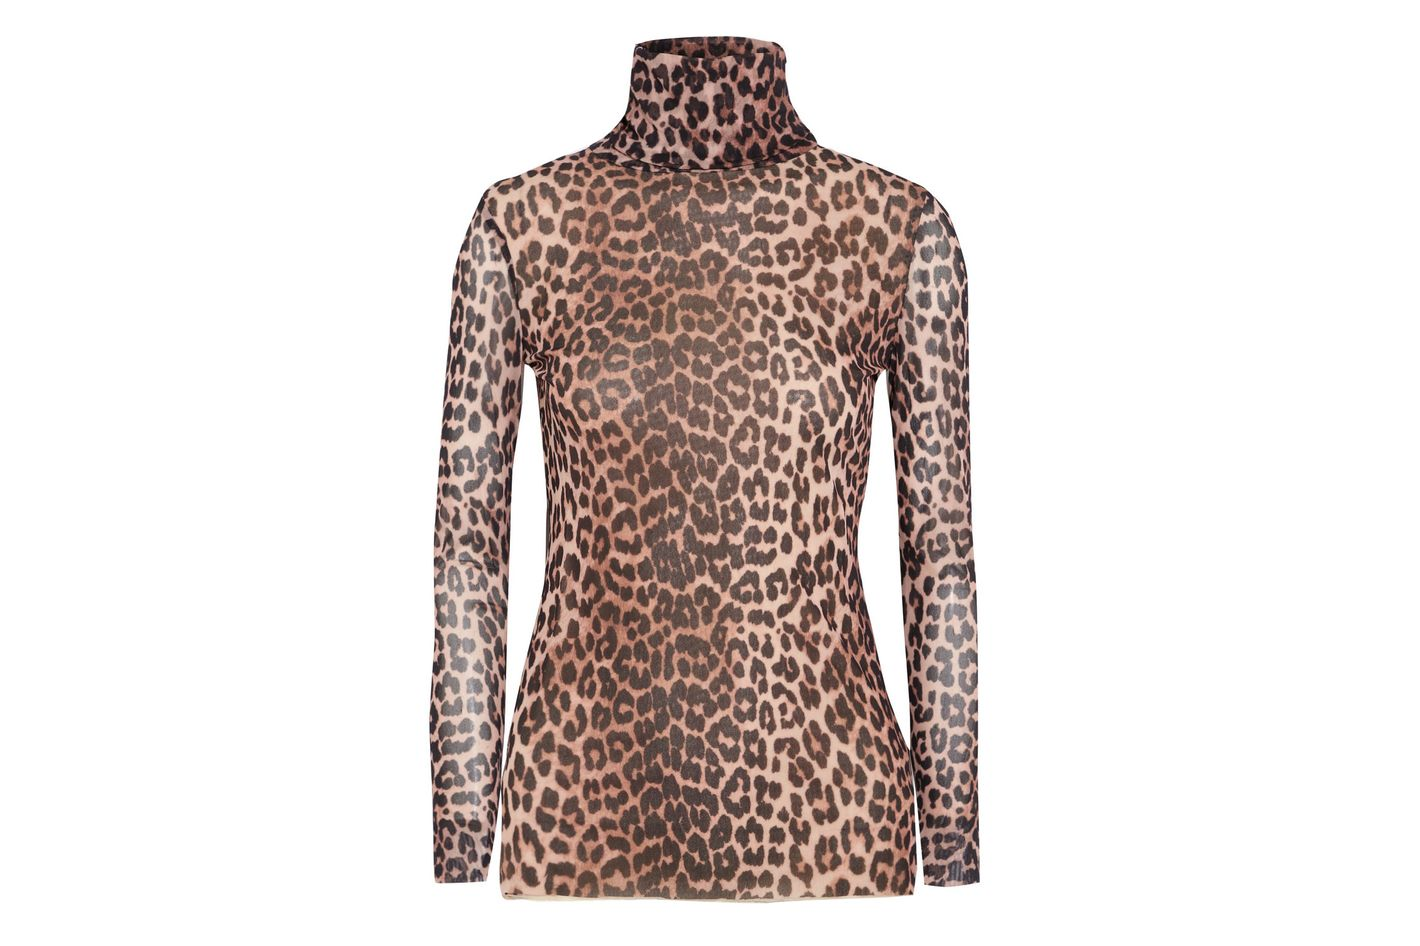 Ganni Leopard Turtleneck